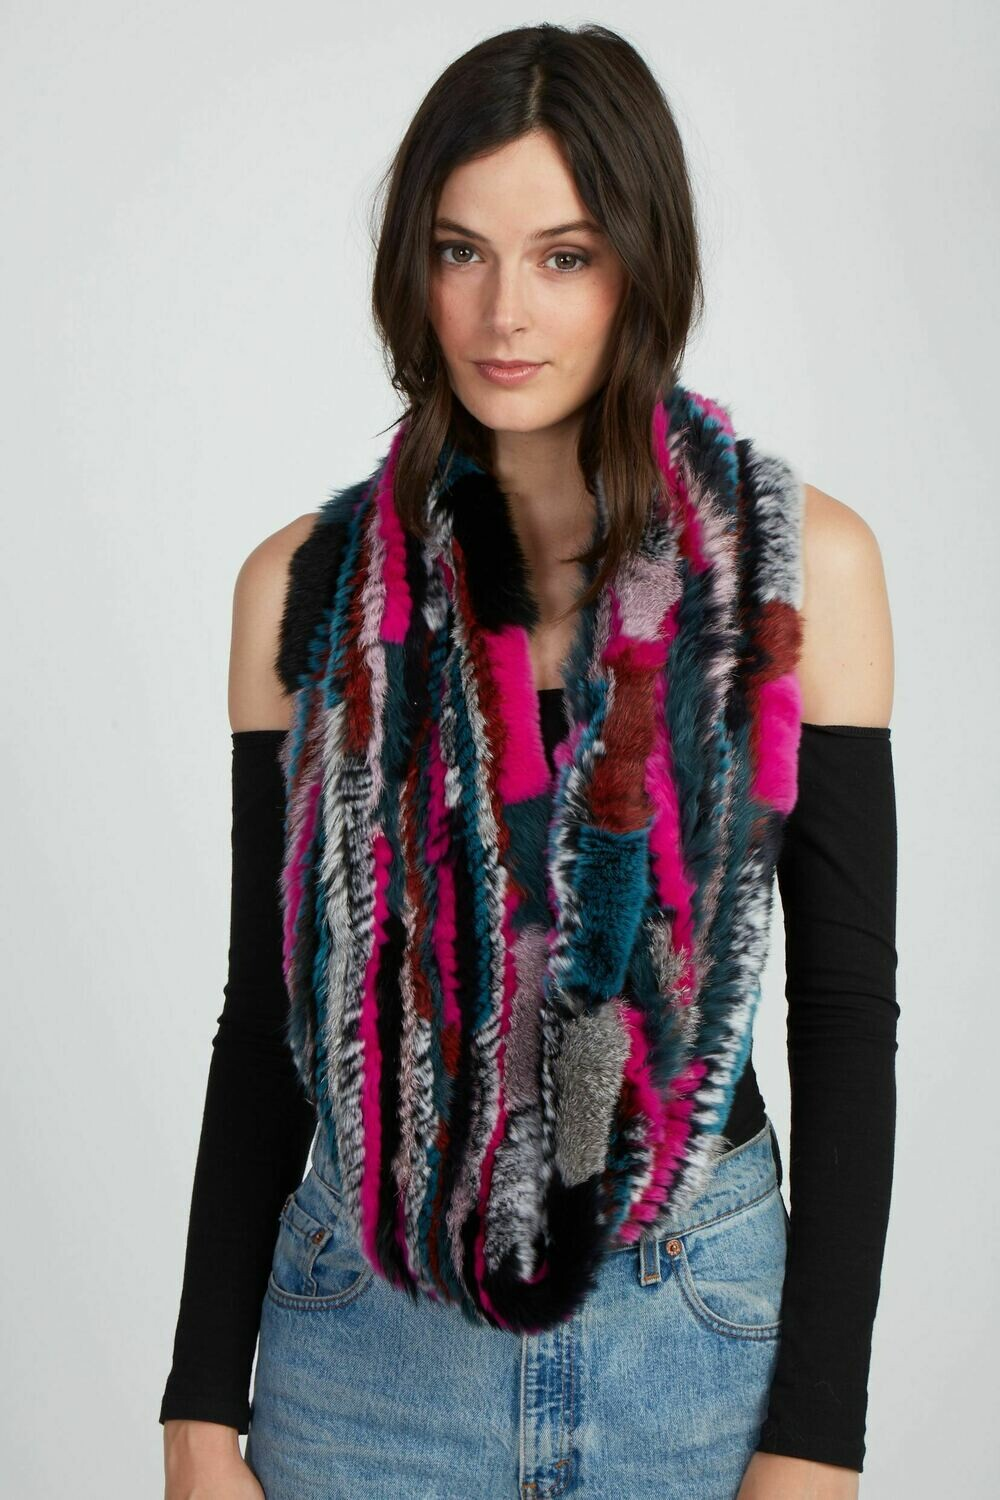 Jocelyn The Delilah Knitted Infinity Scarf - Dark Multi